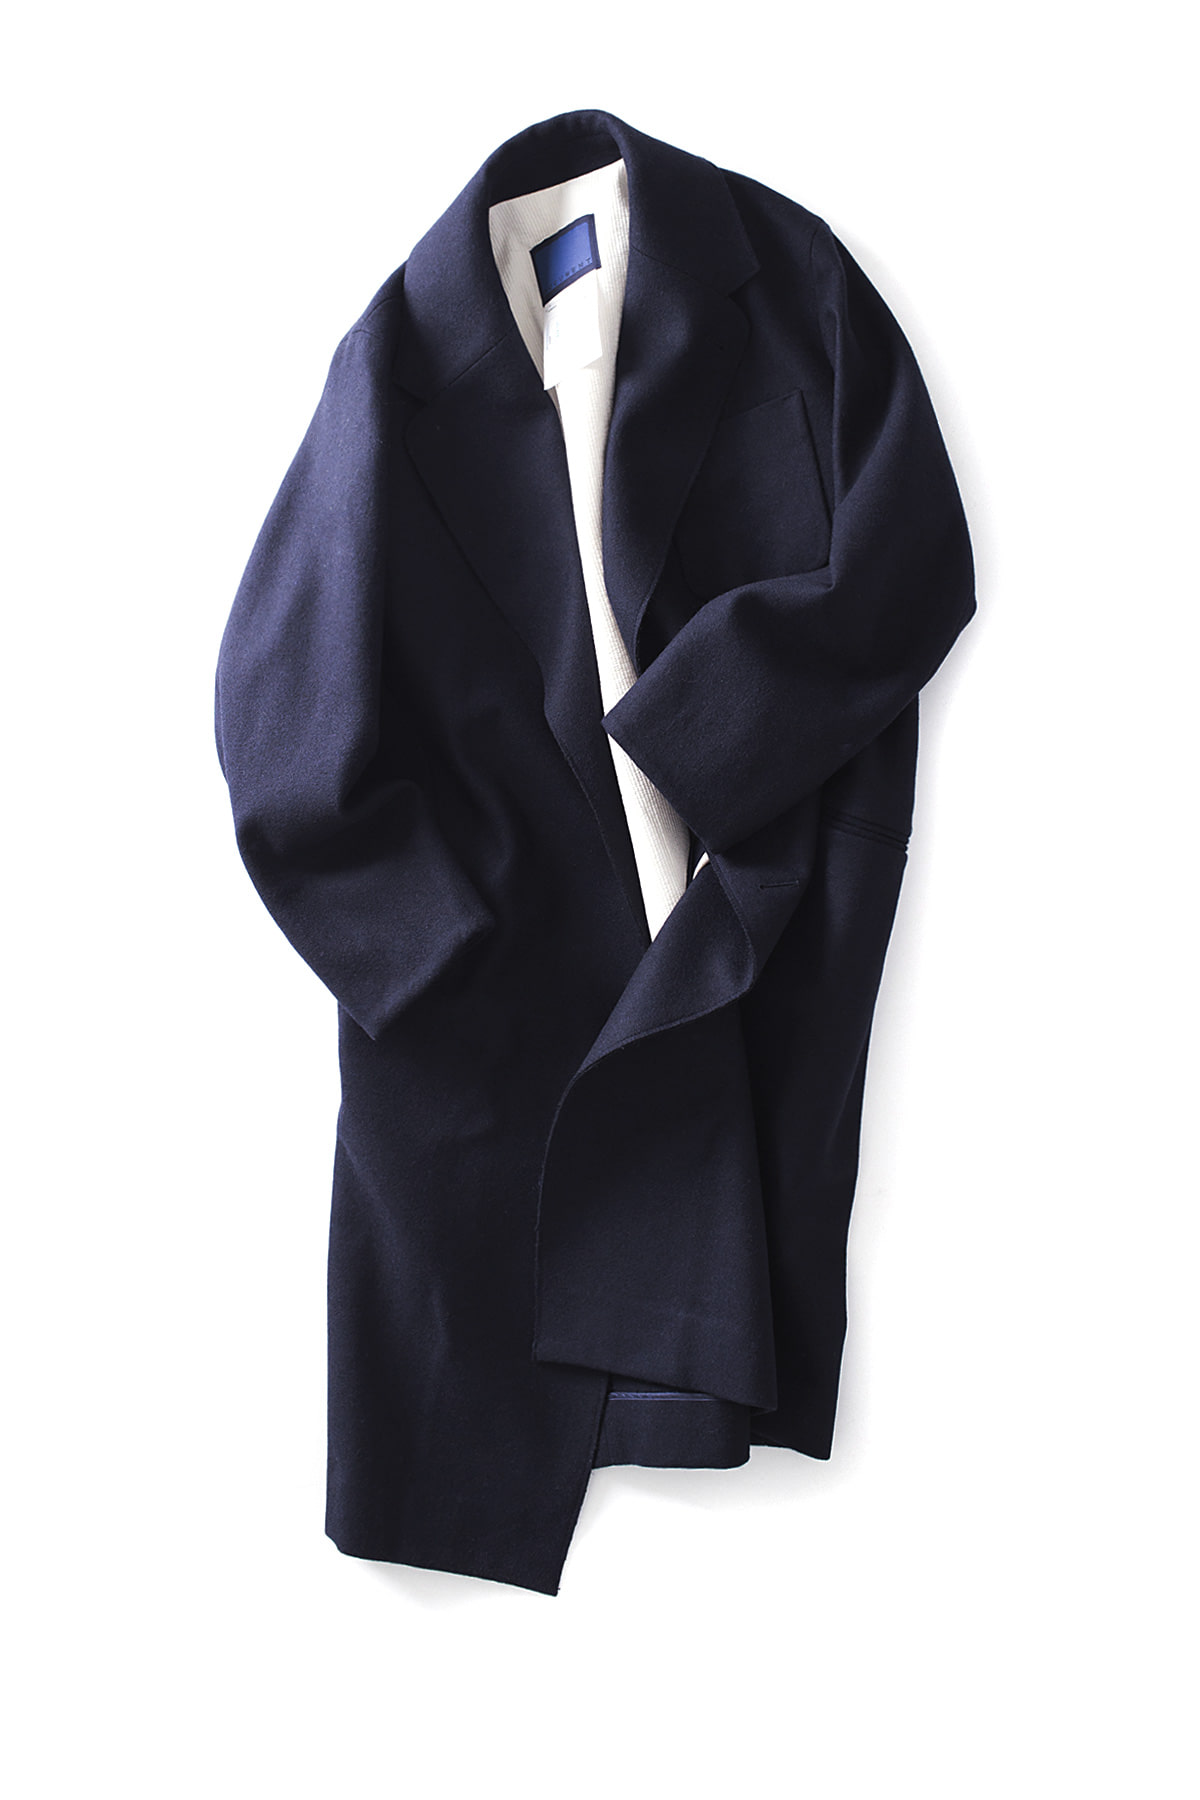 Document : Documentation Wool Menton Coat (Navy)